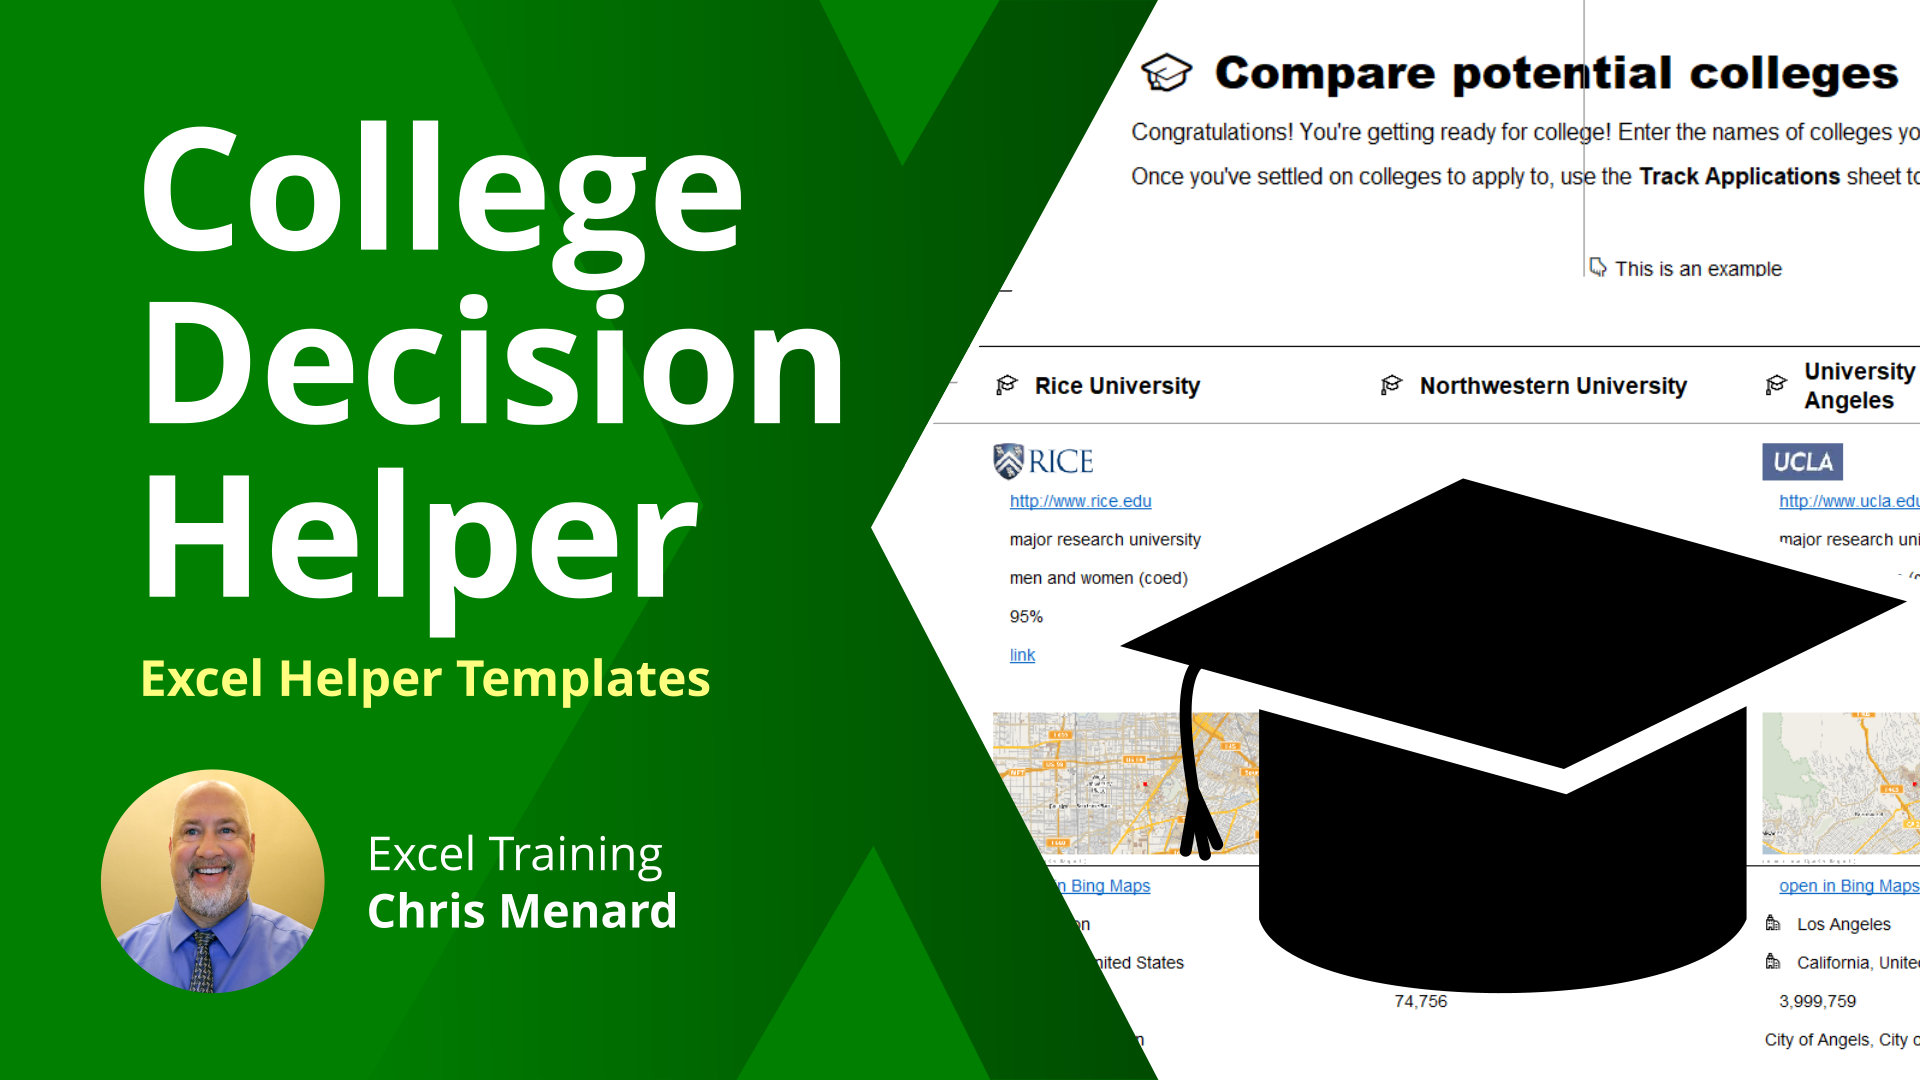 Excel: College Decision Helper Template